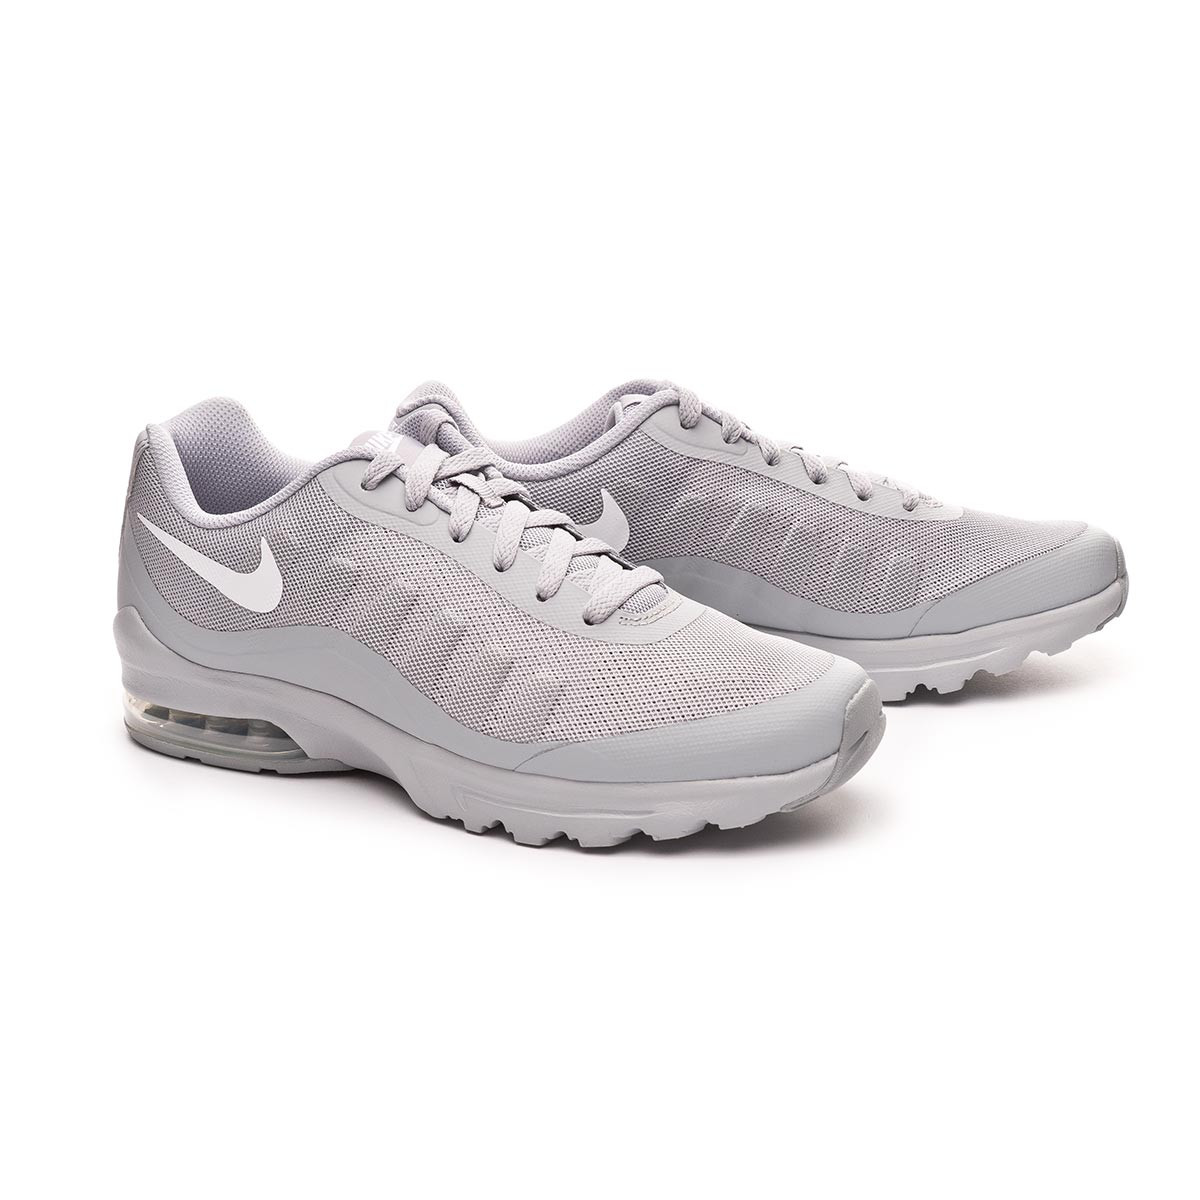 cdf98bb8f9 Trainers Nike Air Max Invigor Wolf grey-White - Football store Fútbol  Emotion